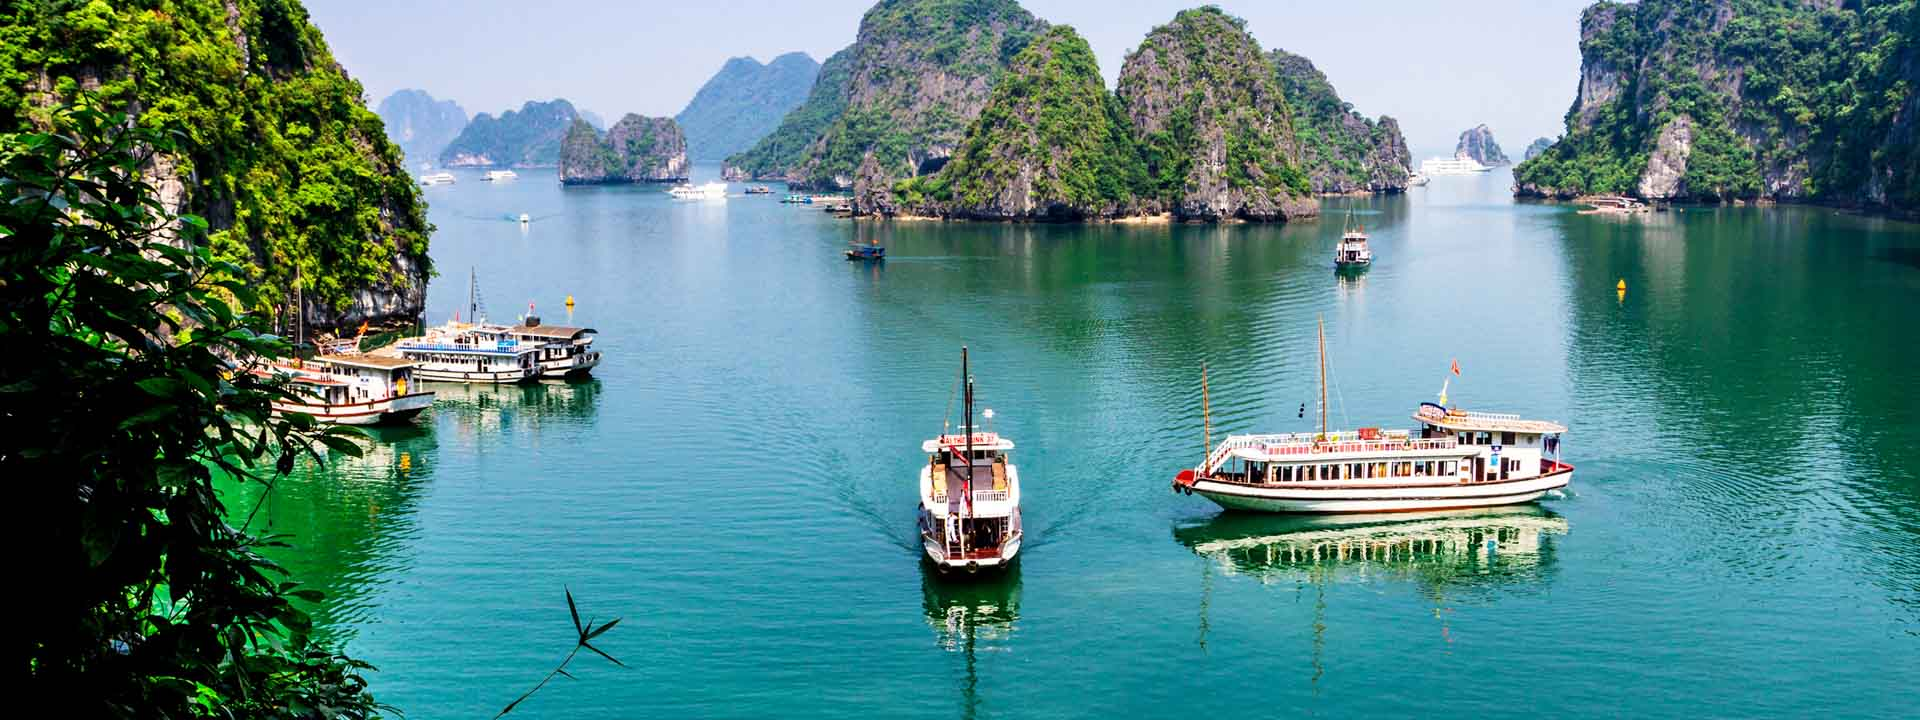 Vietnam – A Land of Adventure Travel 14 days